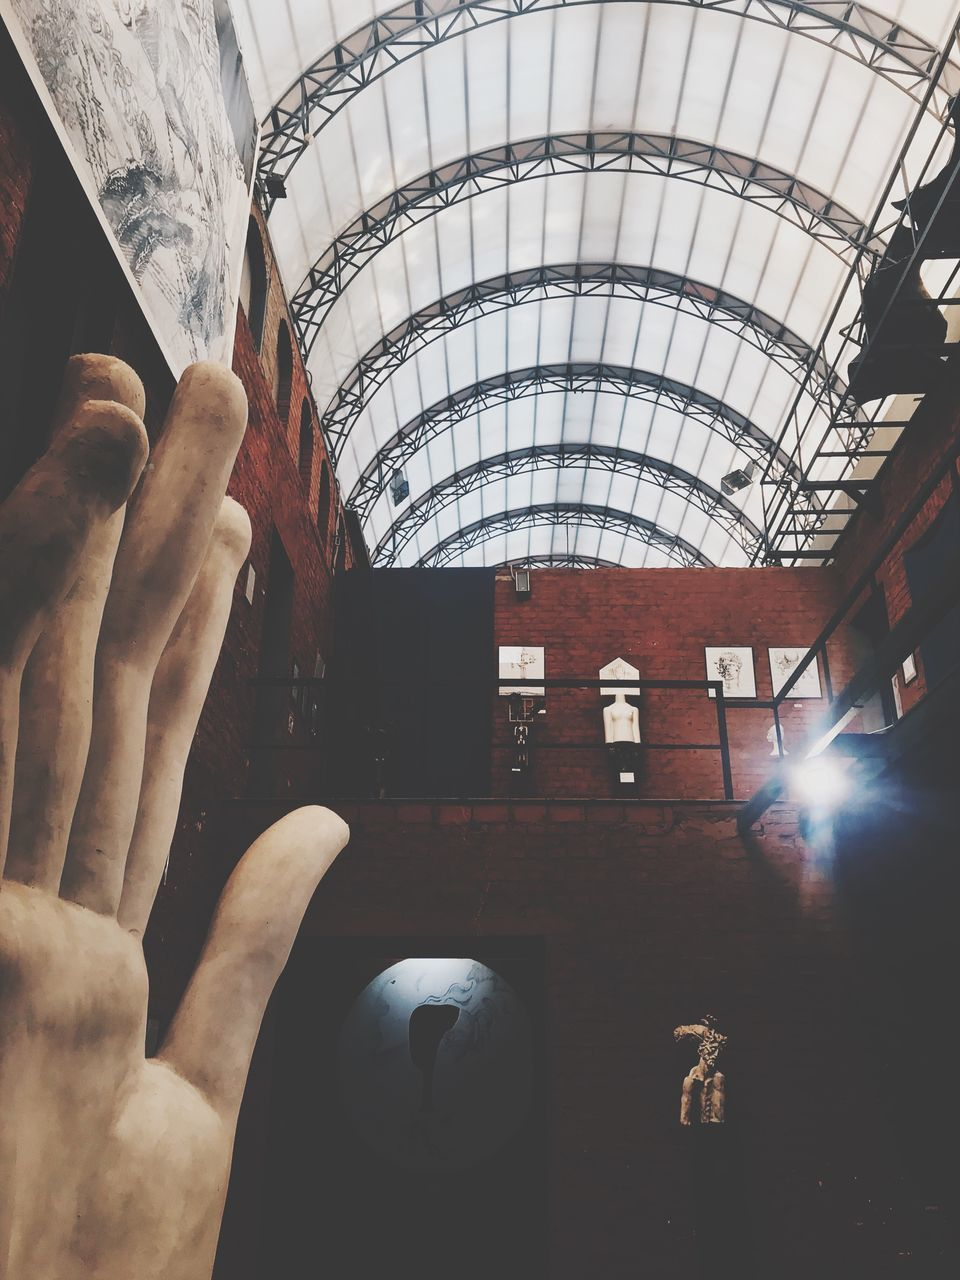 real people, architecture, human hand, indoors, built structure, people, hand, lifestyles, men, human body part, day, holding, sunlight, leisure activity, arch, body part, unrecognizable person, window, ceiling, finger